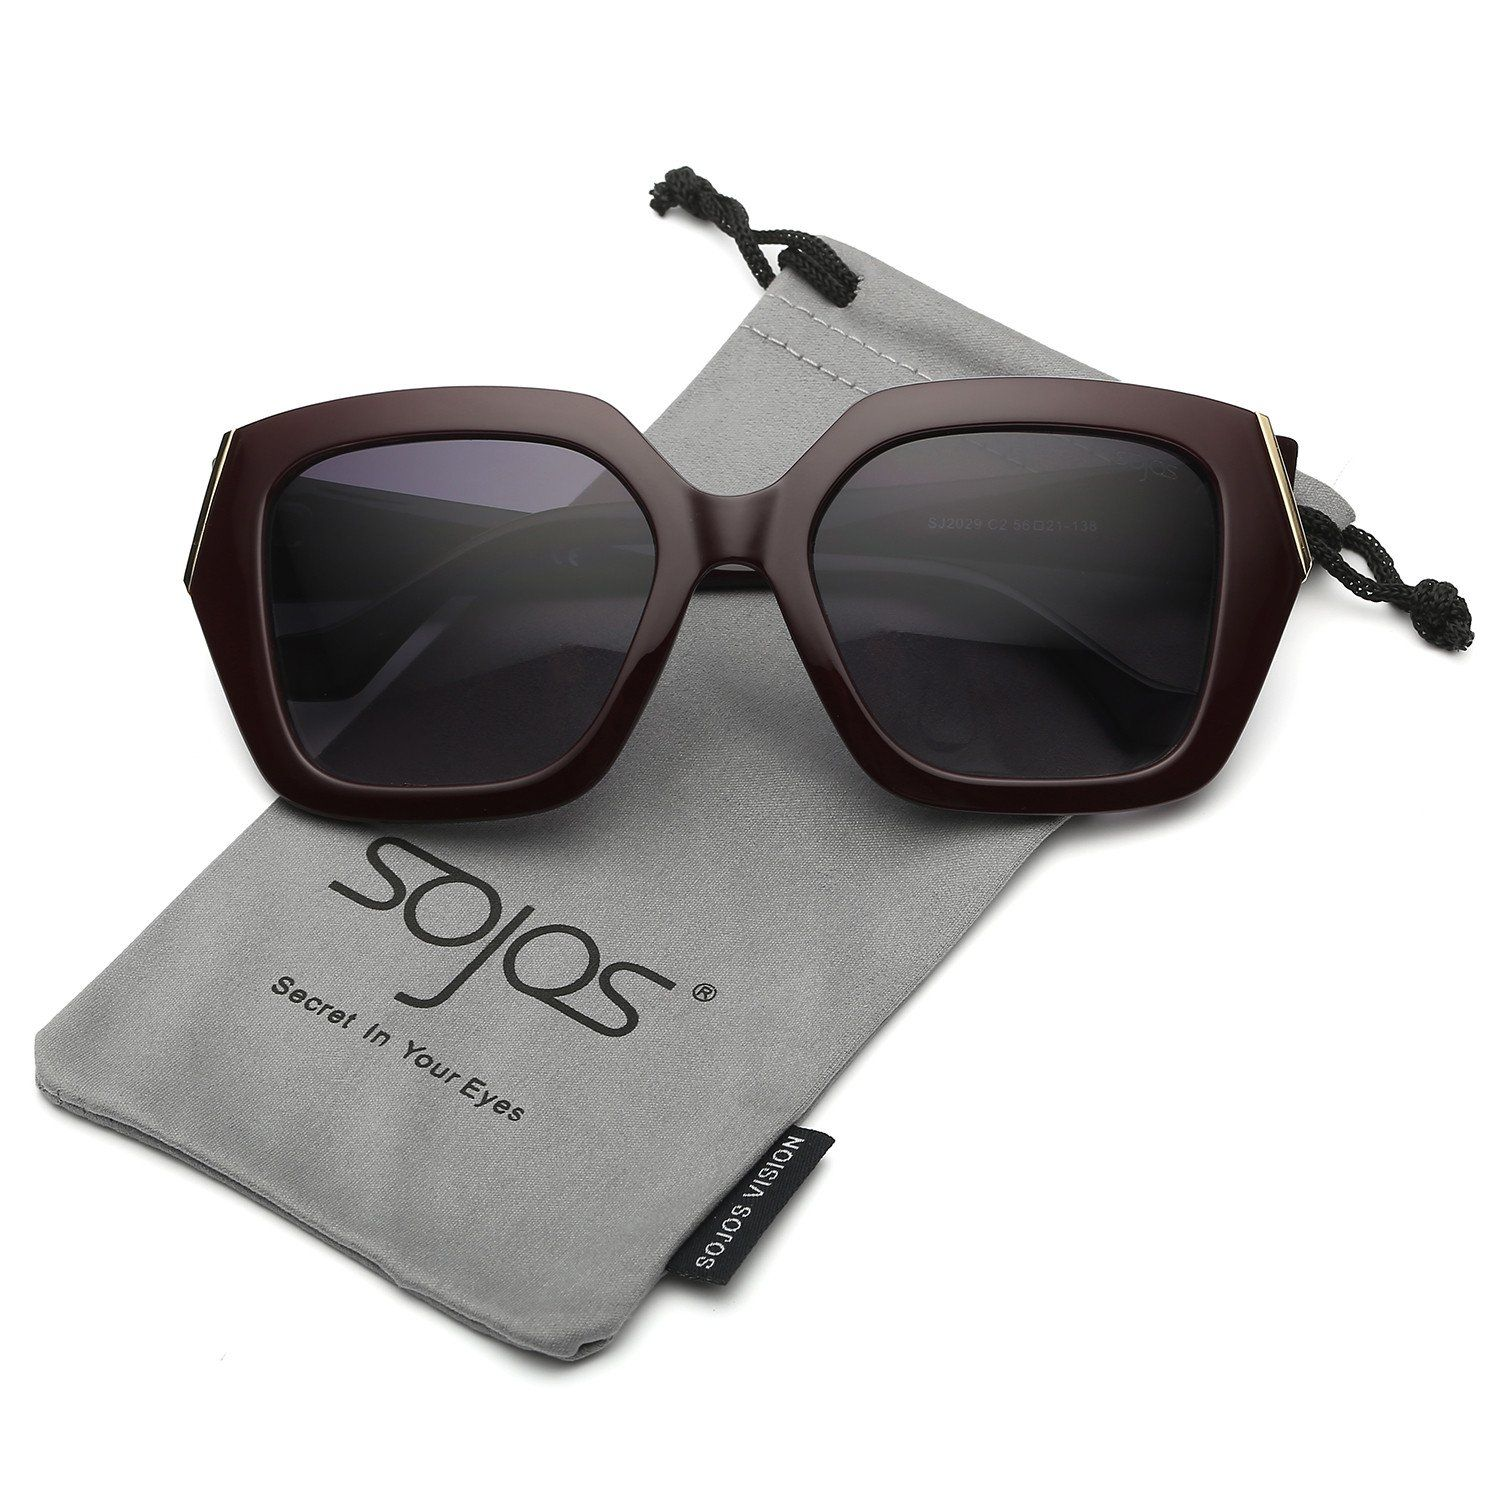 63d6b40e652 SojoS Oversized Fashion Square Frame UV400 Womens Sunglasses SJ2027 SJ2029